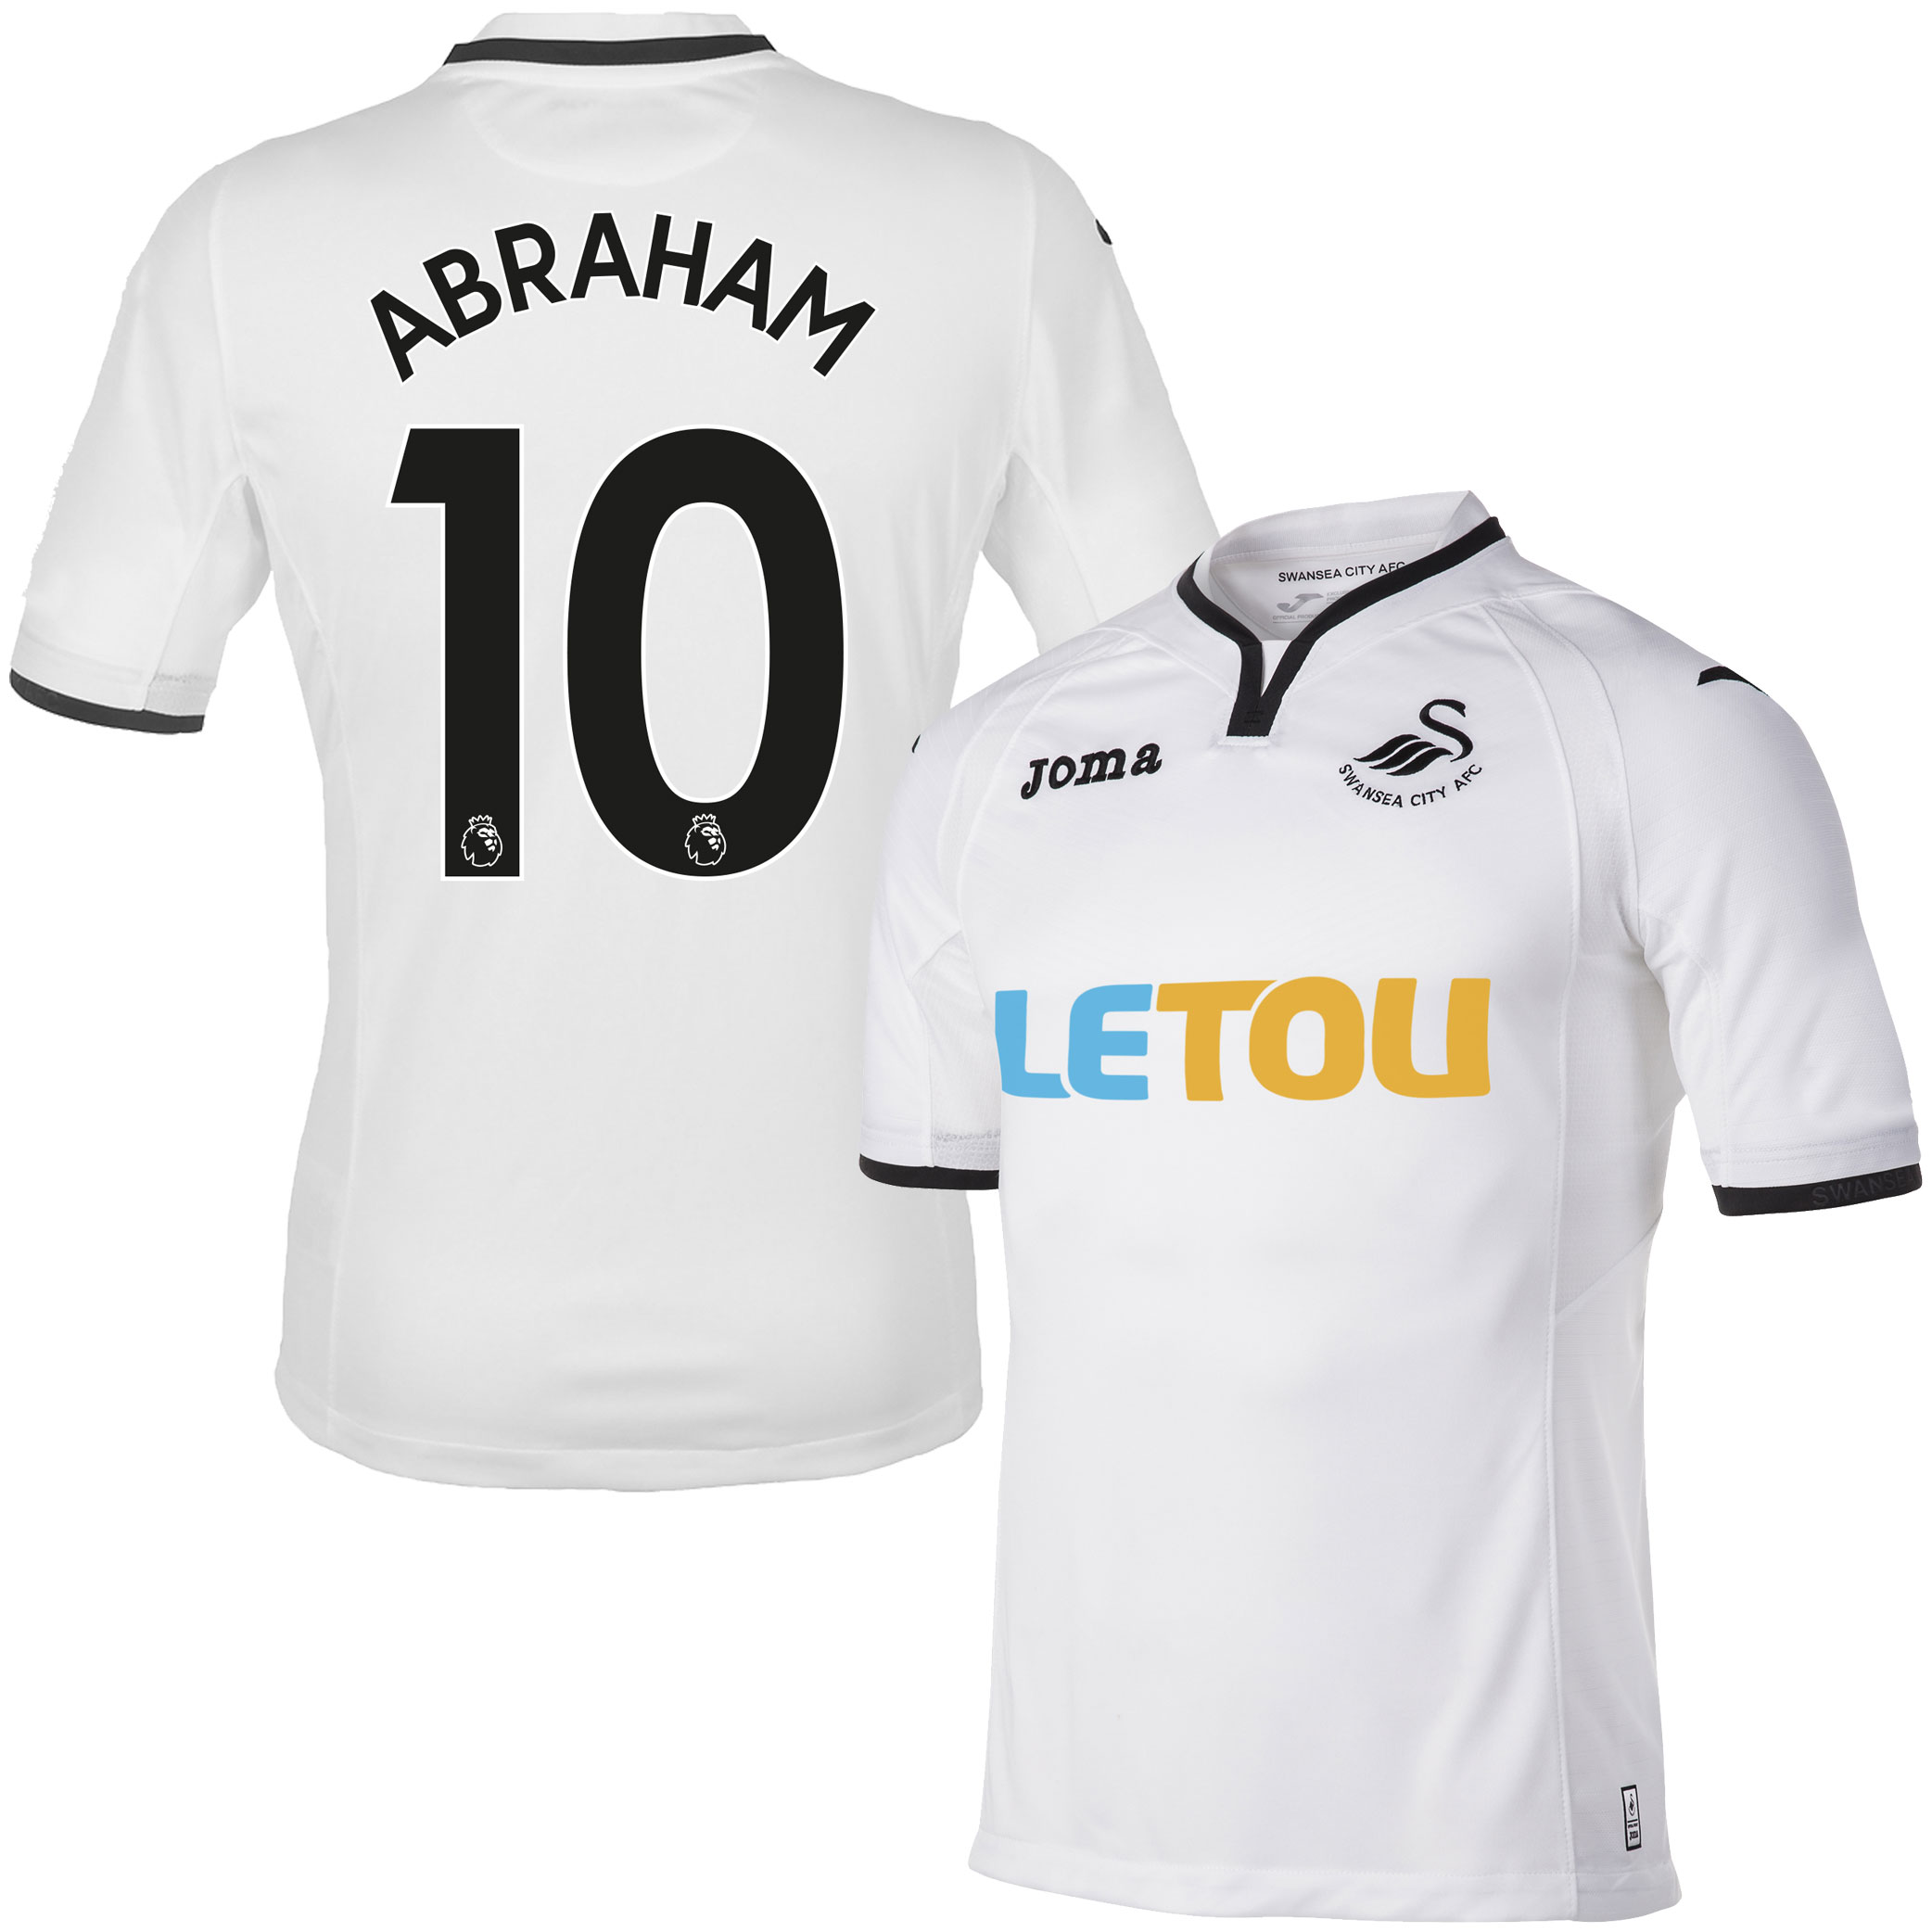 Swansea City Home Abraham Jersey 2017 / 2017 (Authentic EPL Printing) - S